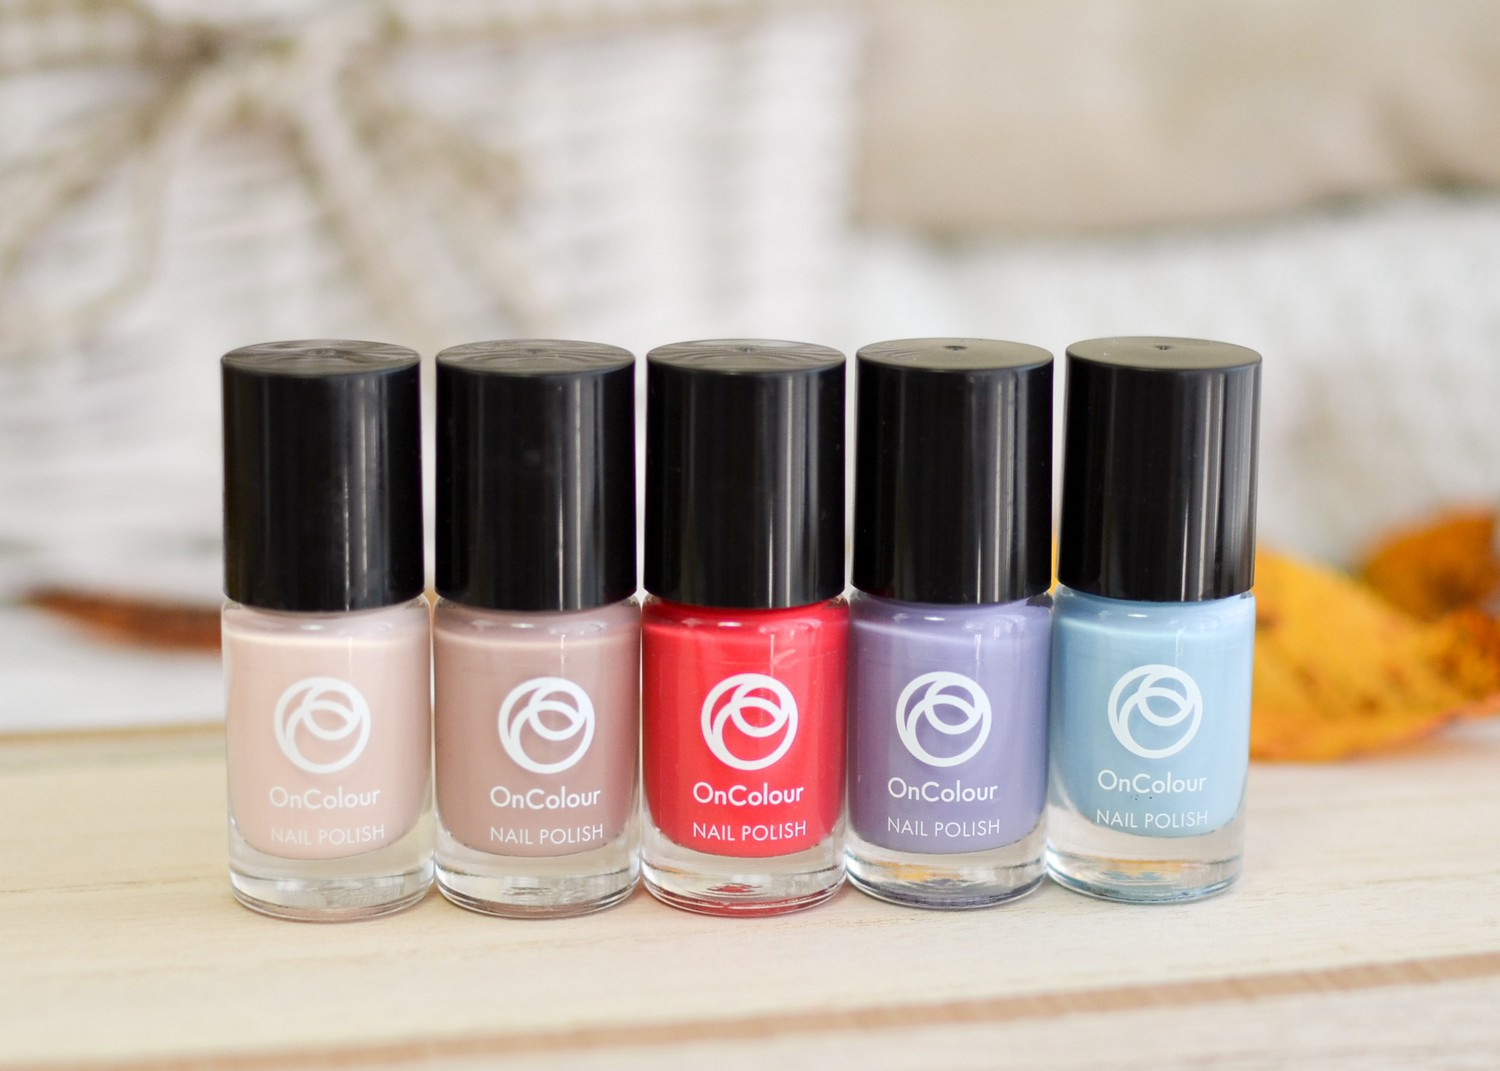 Oriflame OnColour Nail Polishes (Ice Cream Beige, Tasty Nude, Juicy Peach, Candy Lavender, Cloud Blue)